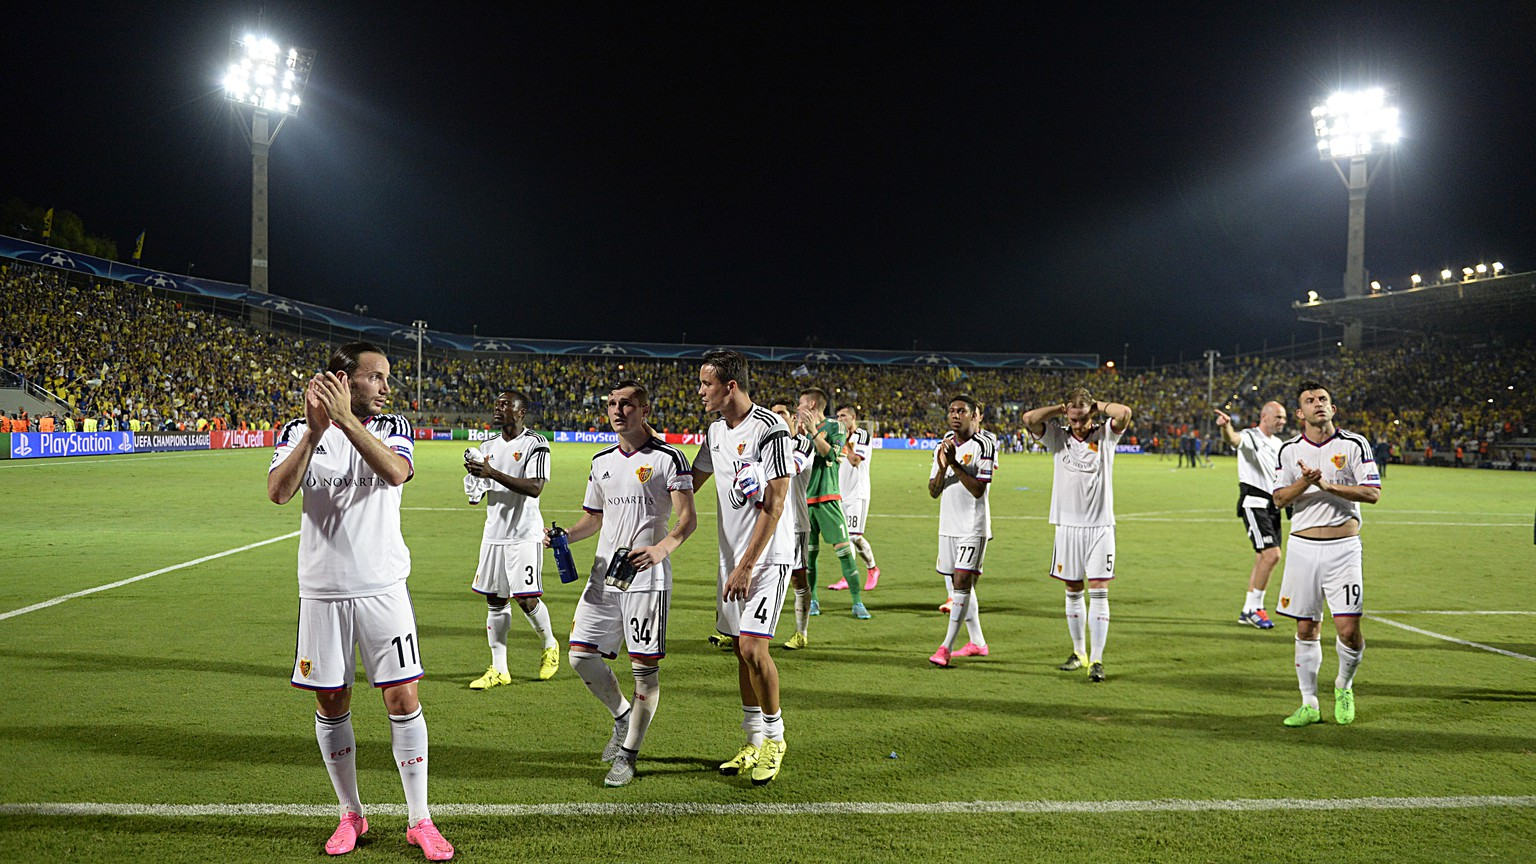 Basel's disappointed players thank the fans after the UEFA Champions League play-off round second leg soccer match between Israel's Maccabi Tel Aviv FC and Switzerland's FC Basel 1893 in the Bloomfield stadium in Tel Aviv, Israel, on Tuesday, August 25, 2015. (KEYSTONE/Georgios Kefalas)